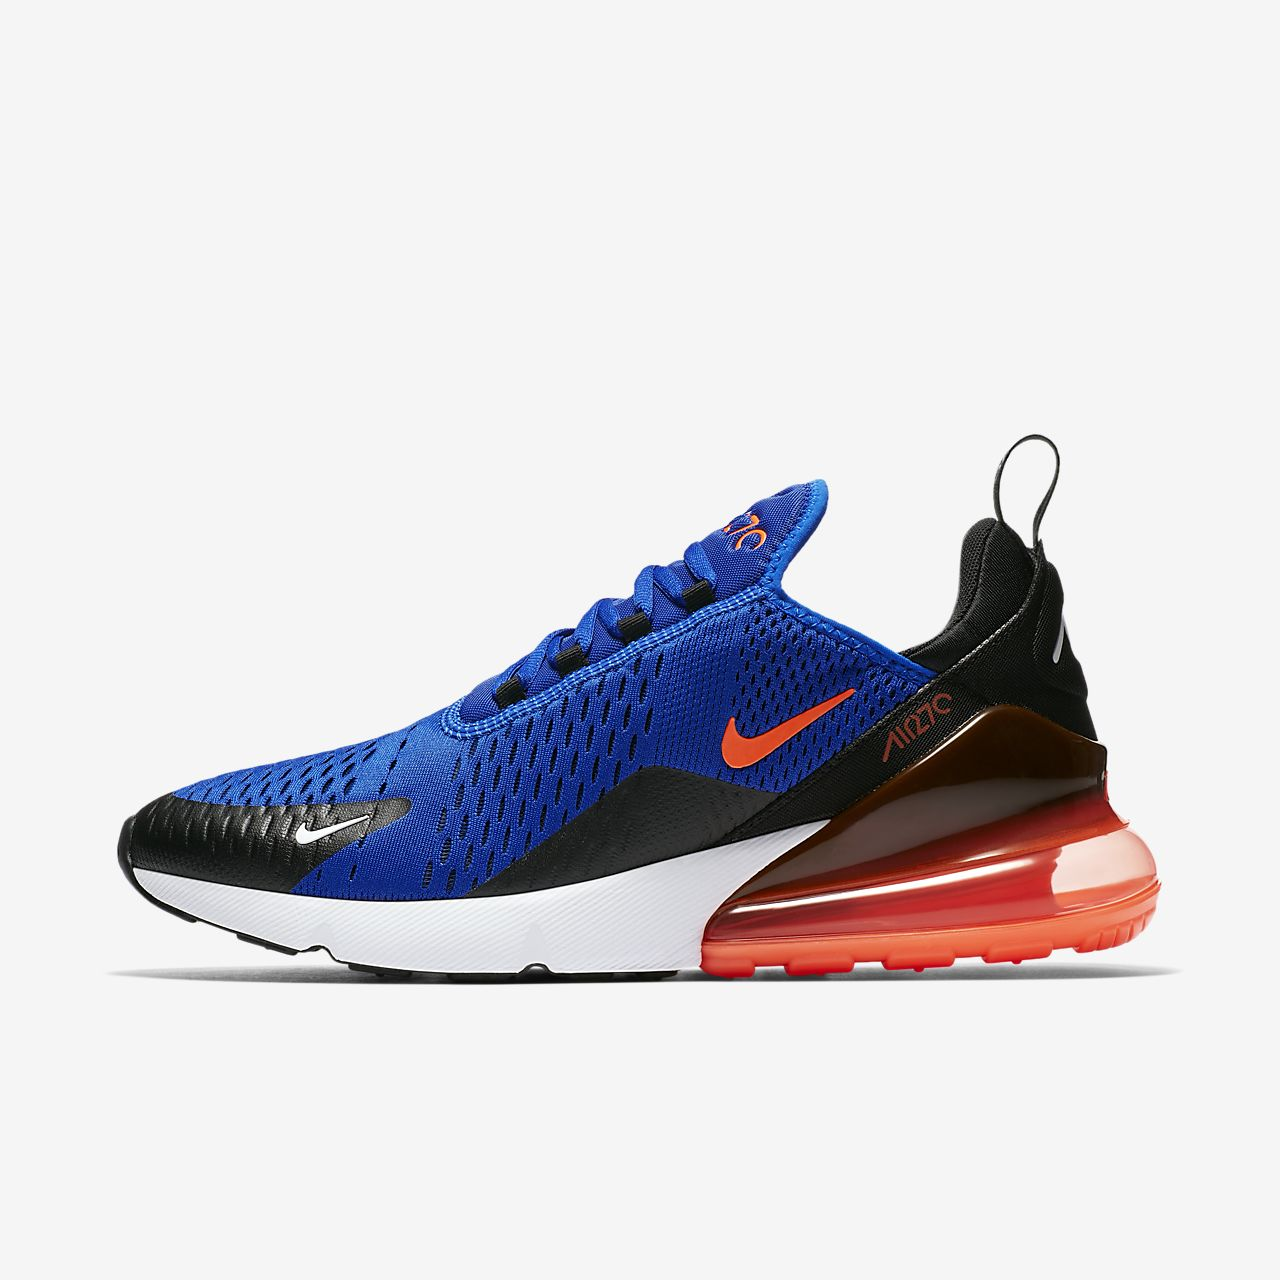 Are Air Max Good Running Shoes